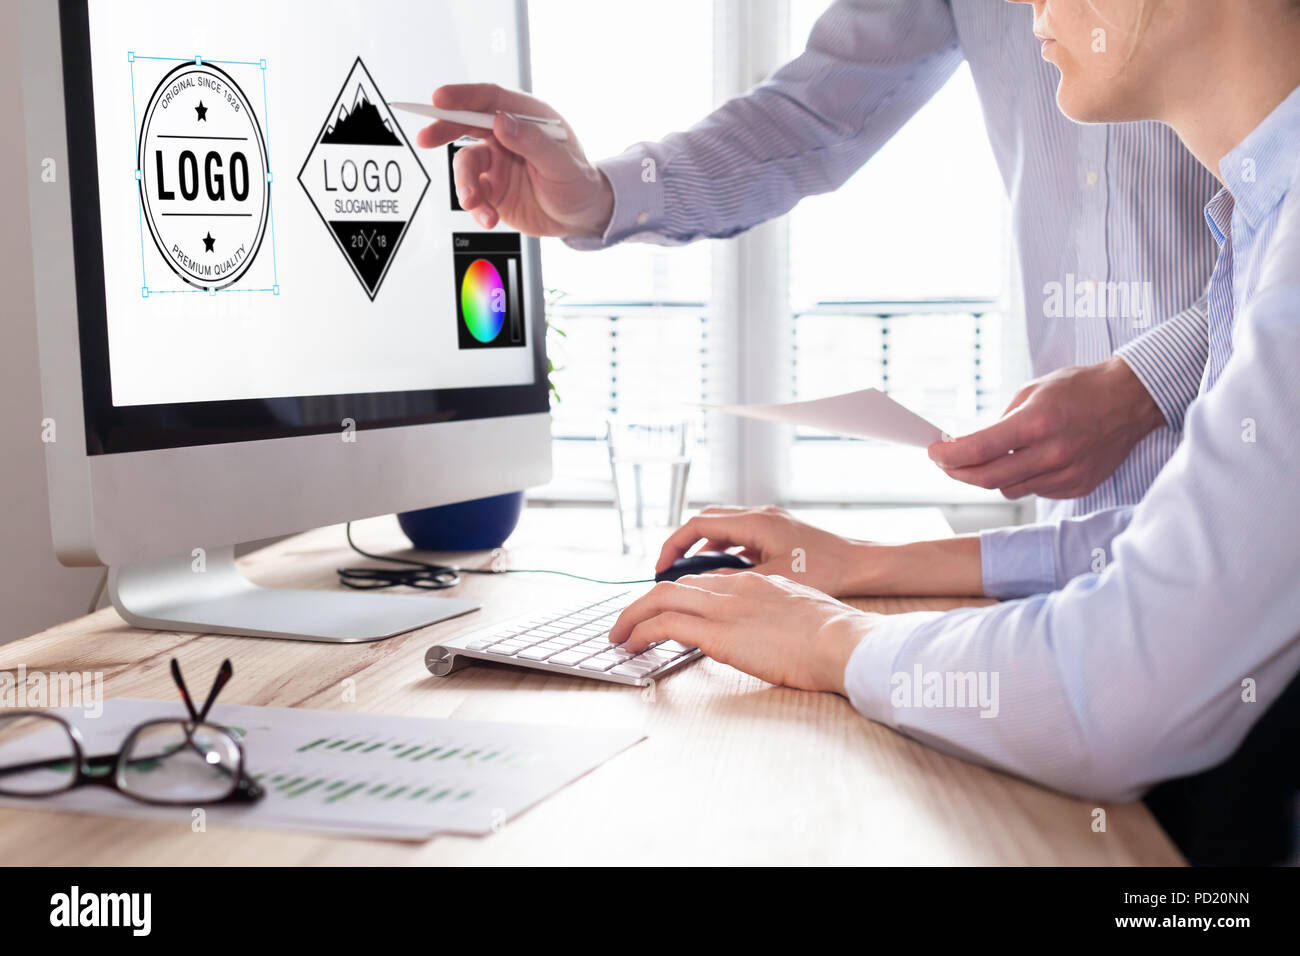 Designer team sketching a logo in digital design studio on computer, creative graphic drawing skills for marketing and branding - Stock Image